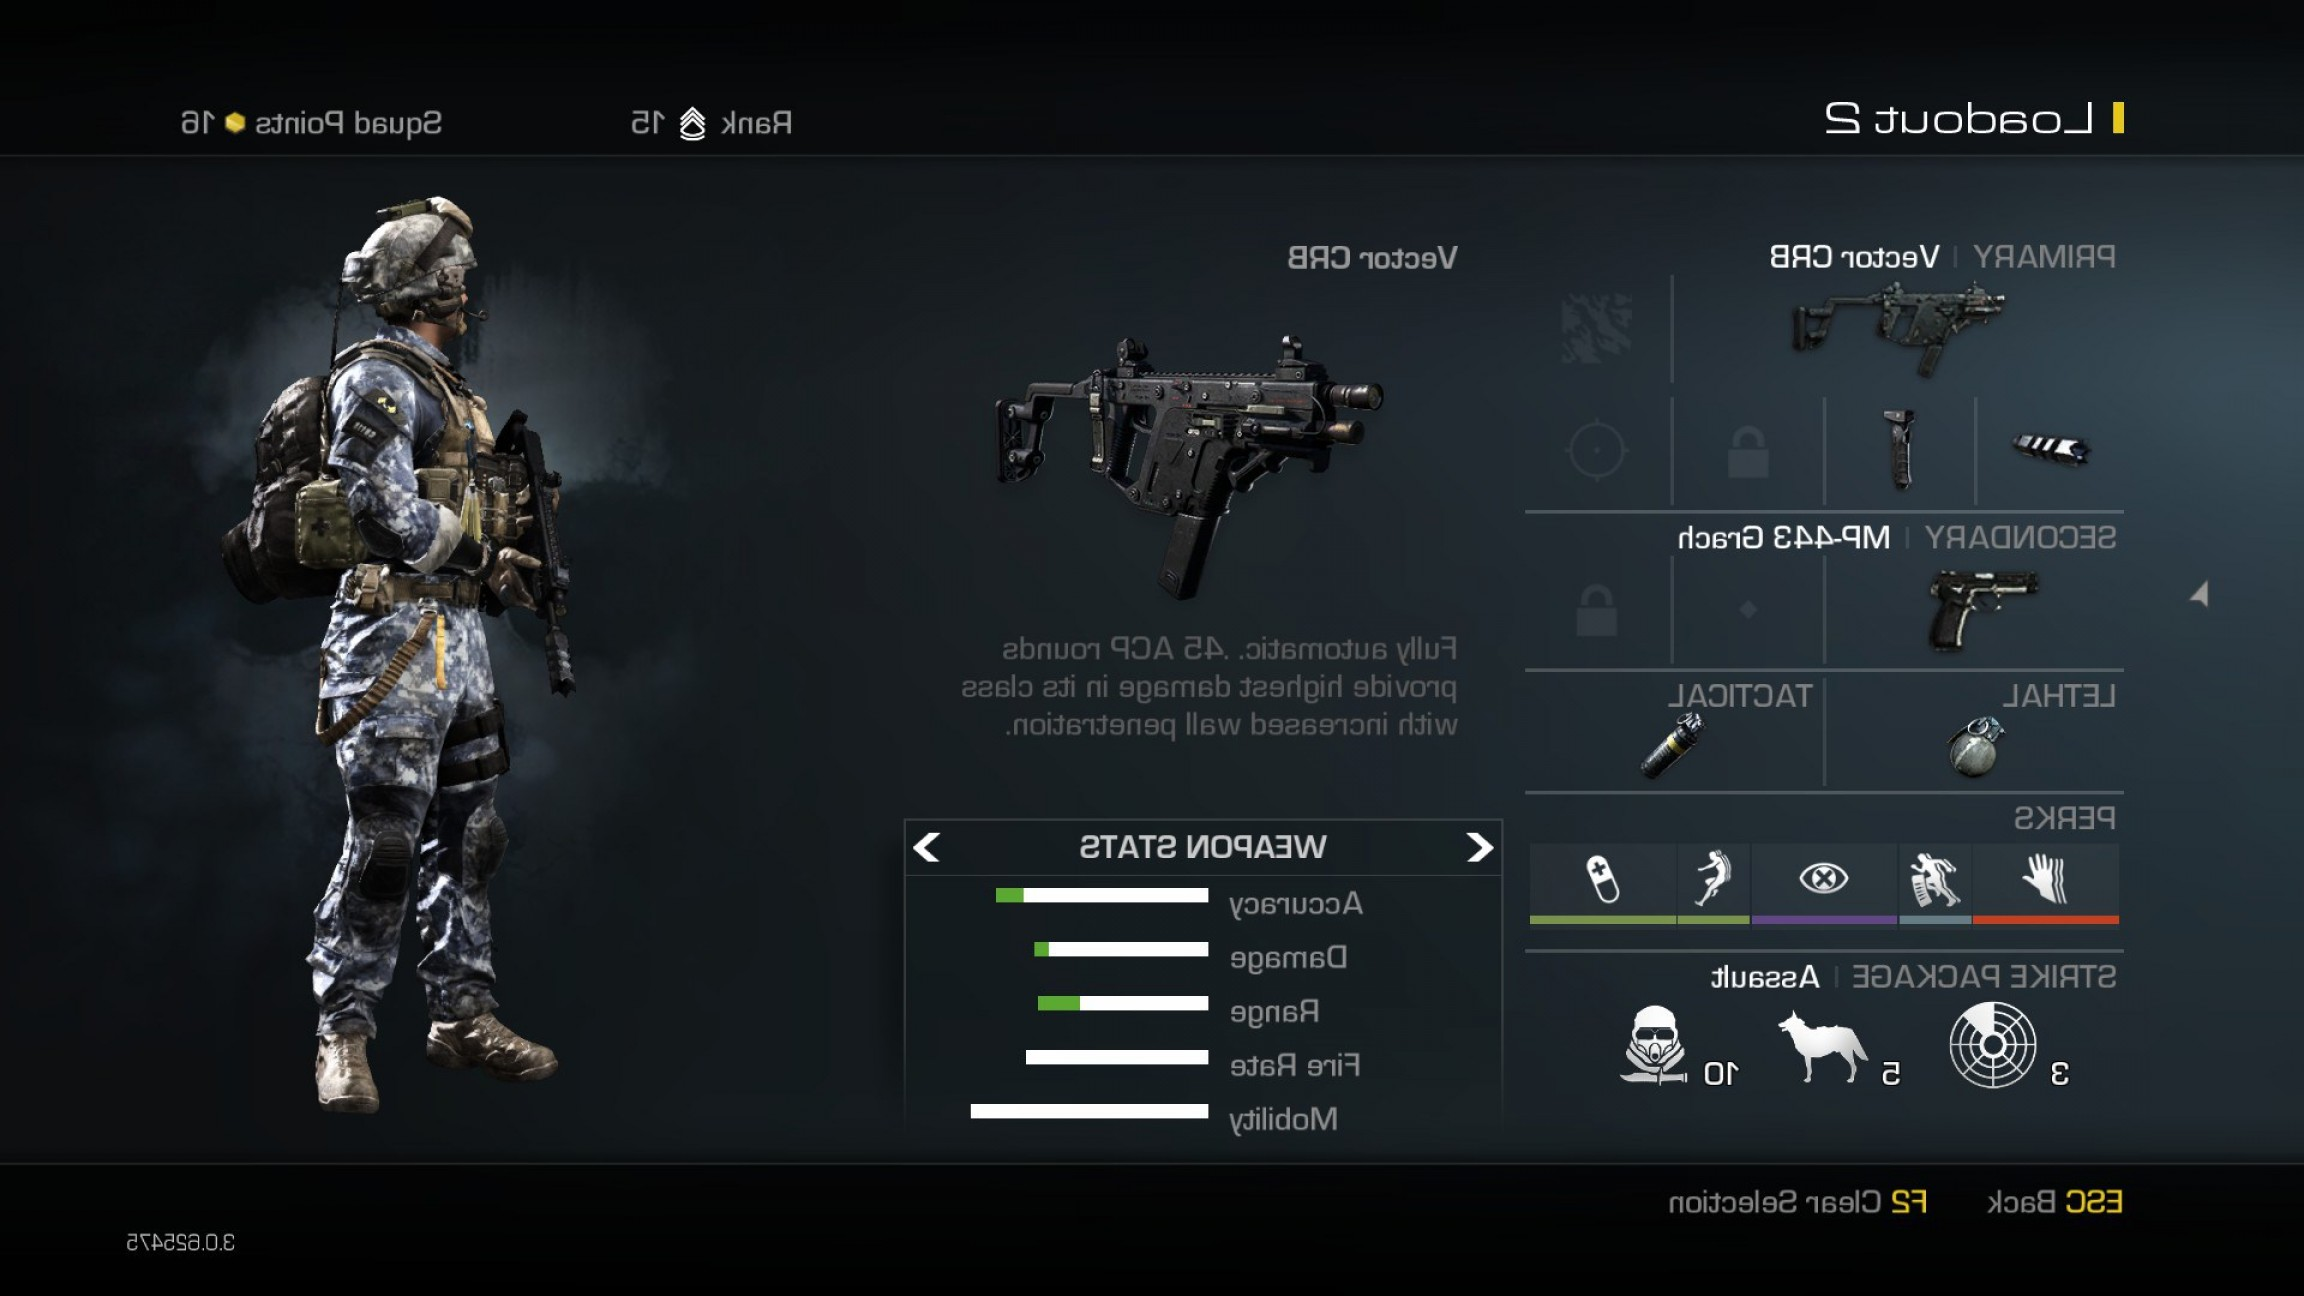 Ghosts Vector CQB: Vector Crb Submachine Gun Weapon Guide Call Of Duty Ghosts Best Soldier Setup